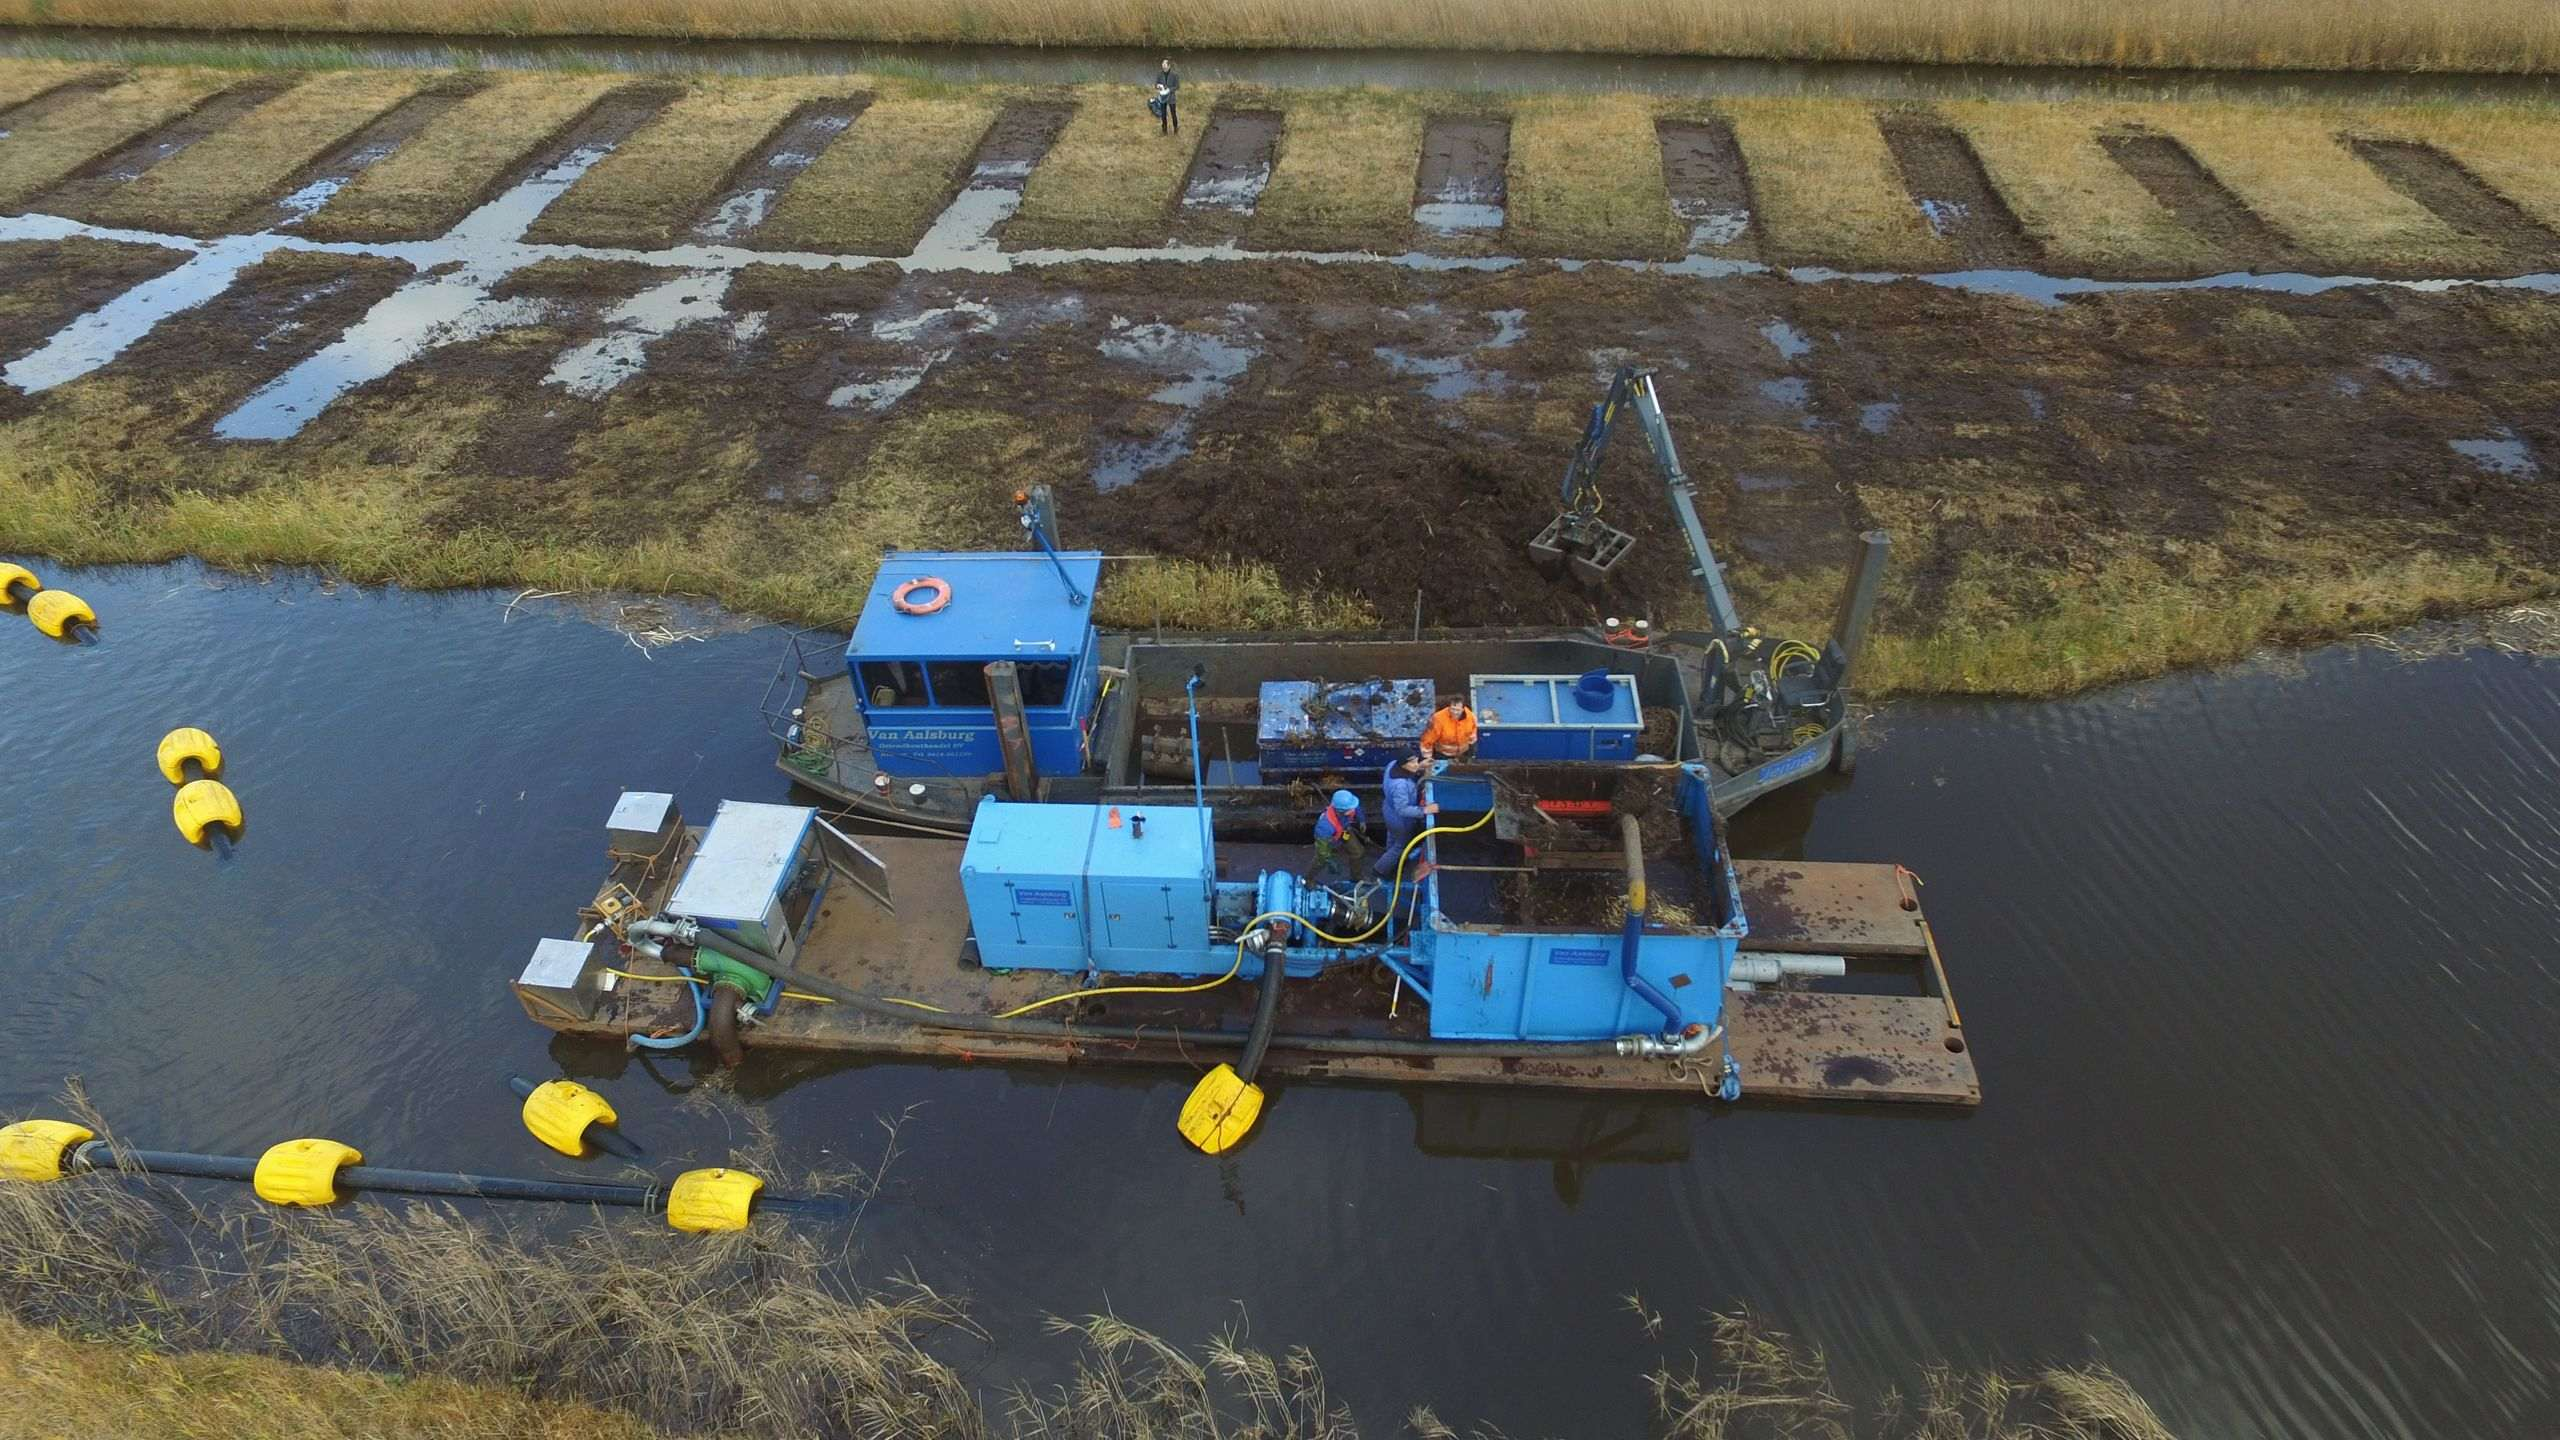 Nieuwkoopse plassen - Via pressure pipes to a temporary depot.